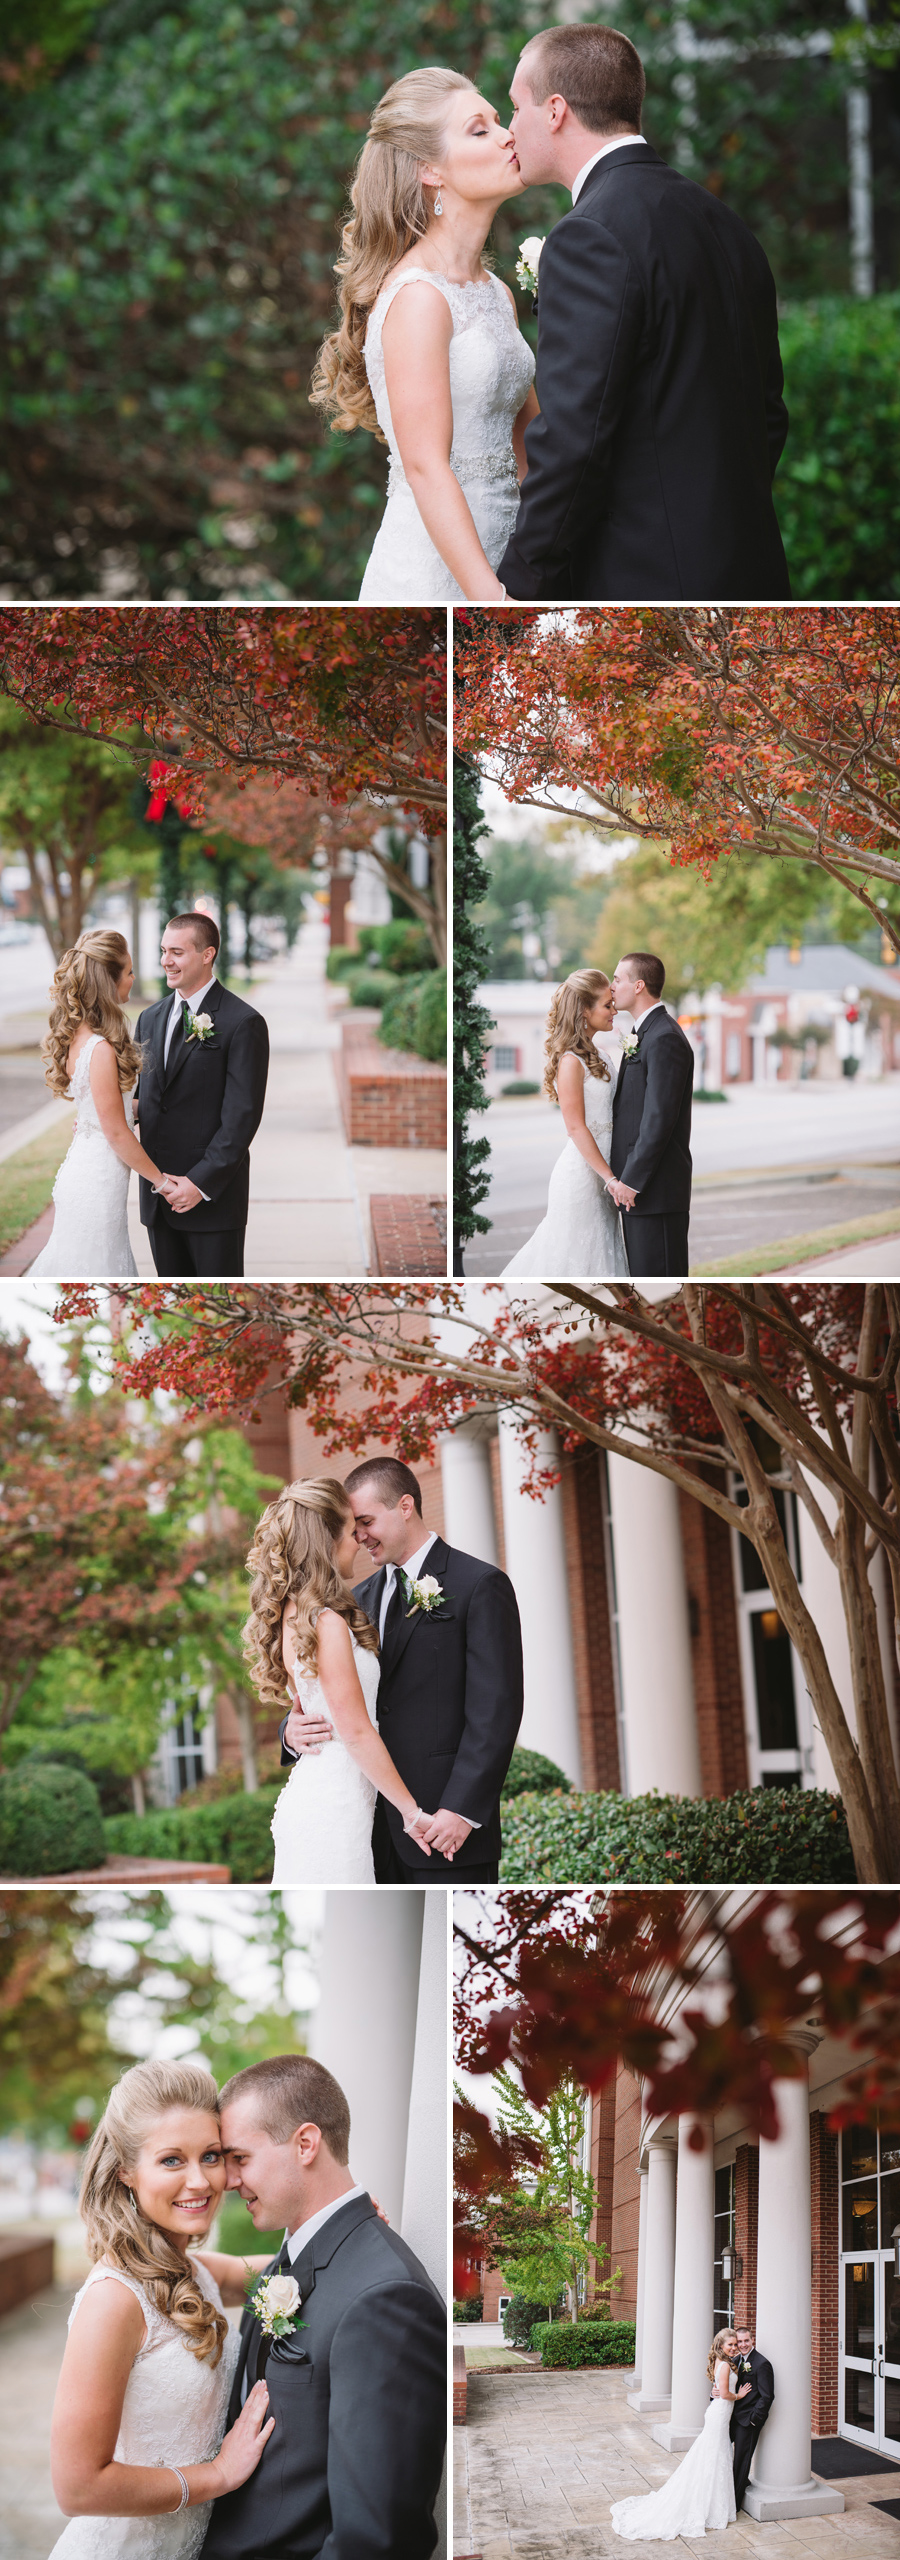 jodi-ryan-north-augusta-wedding